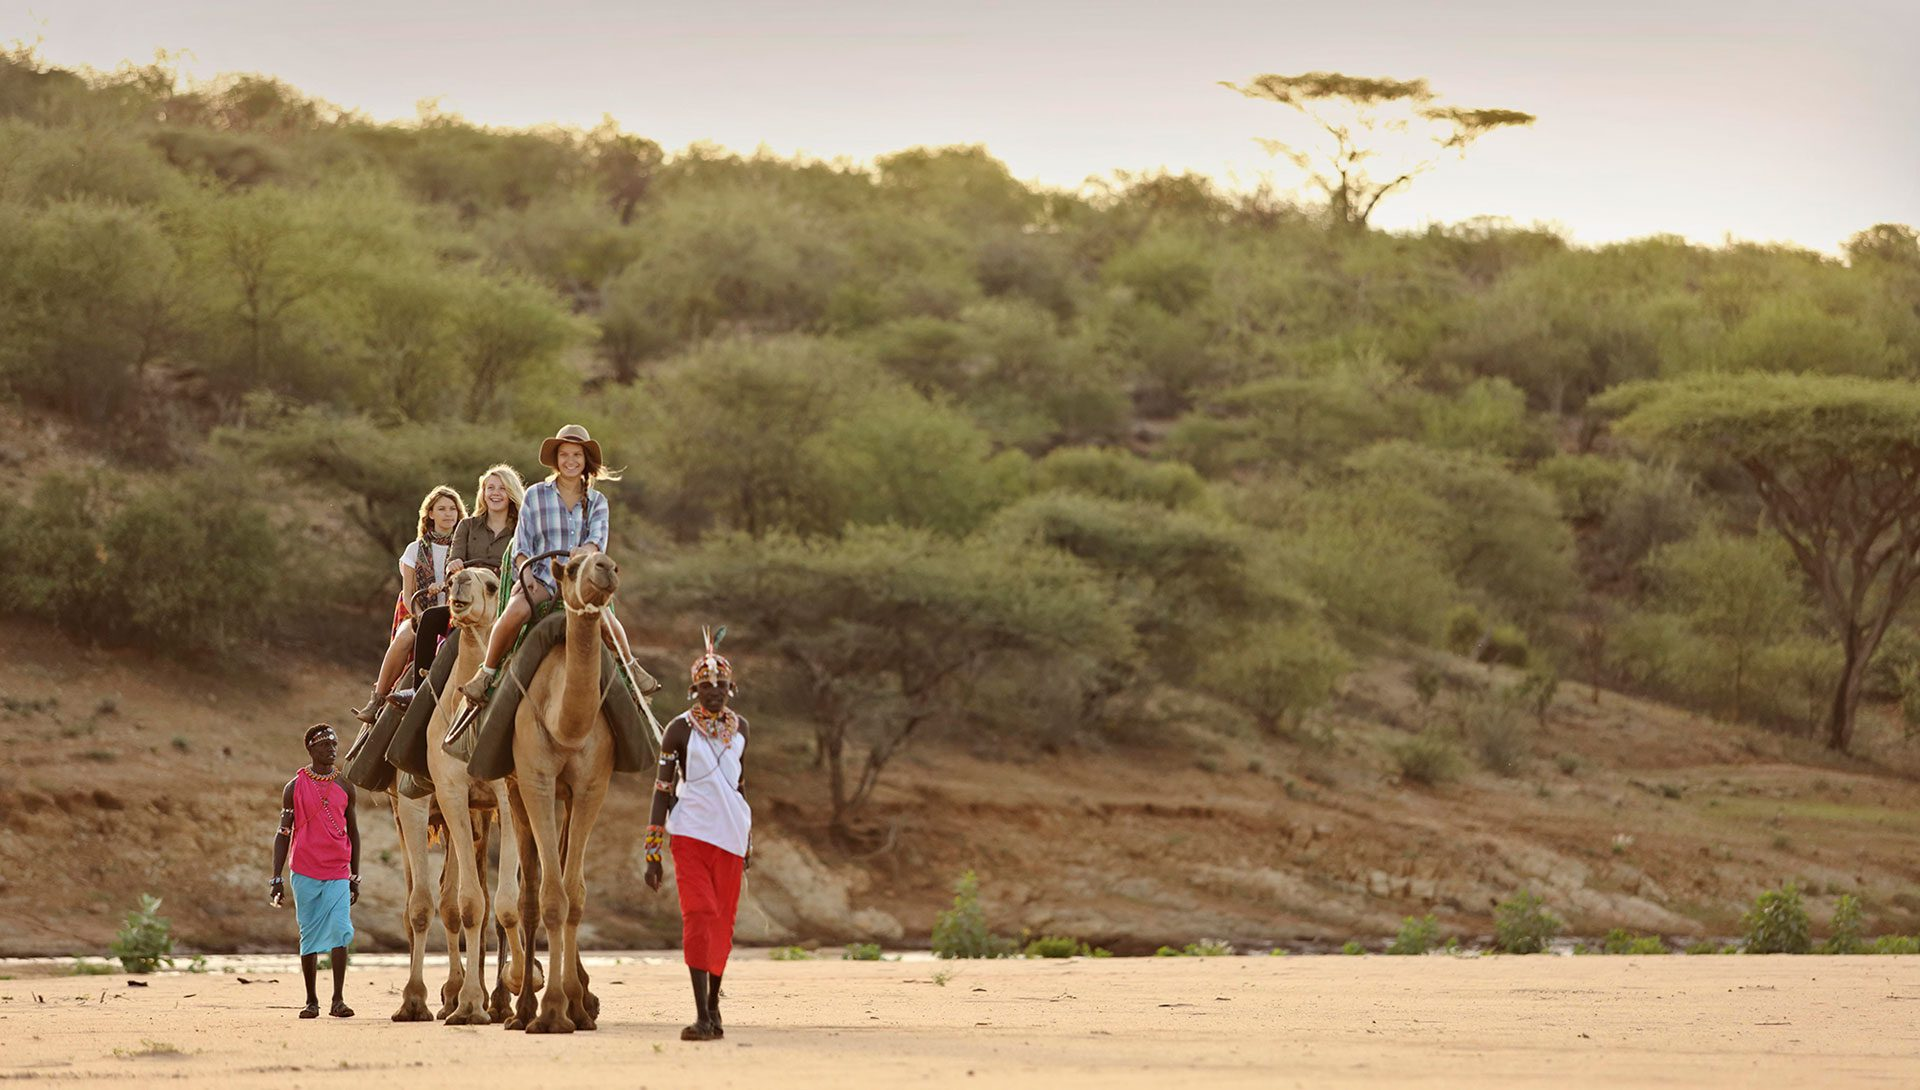 samburu male leads a family of three who are sitting on the backs of camels crossing a dry river bed